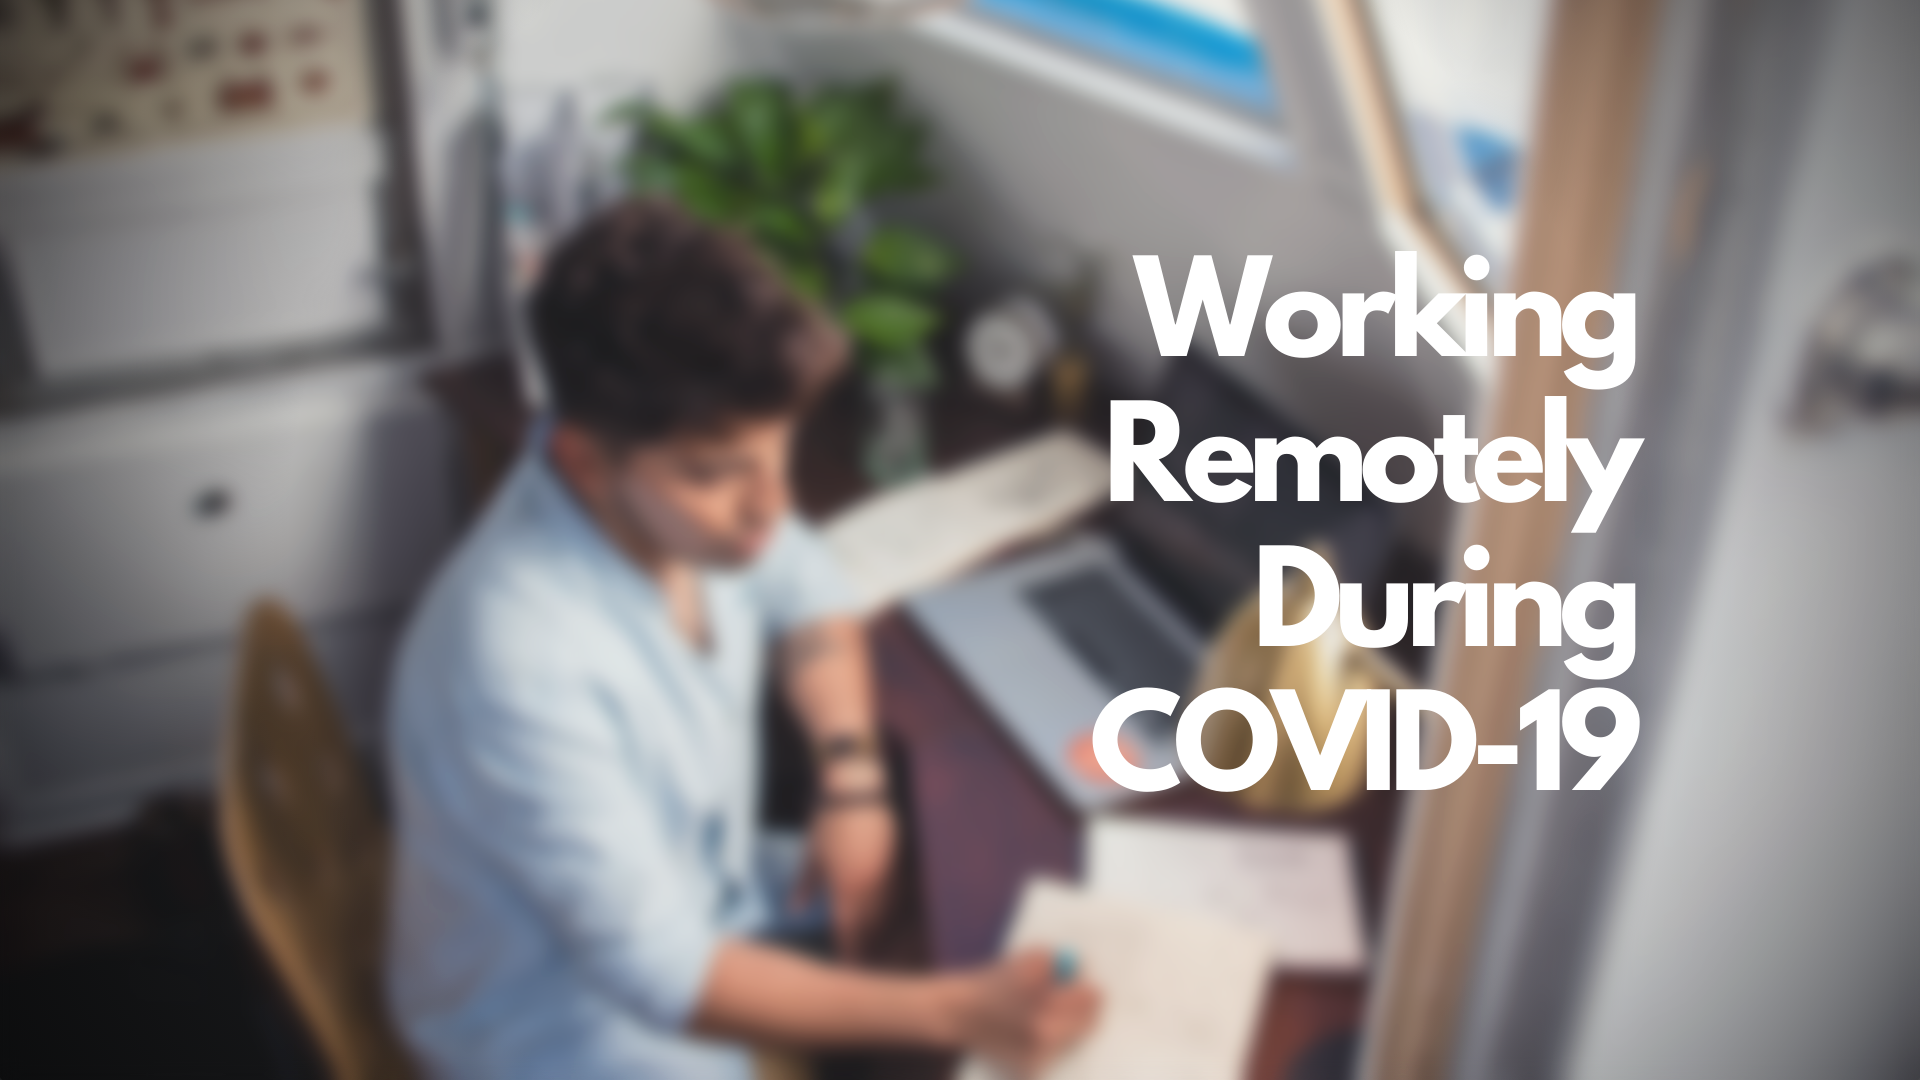 Work from home during covid19